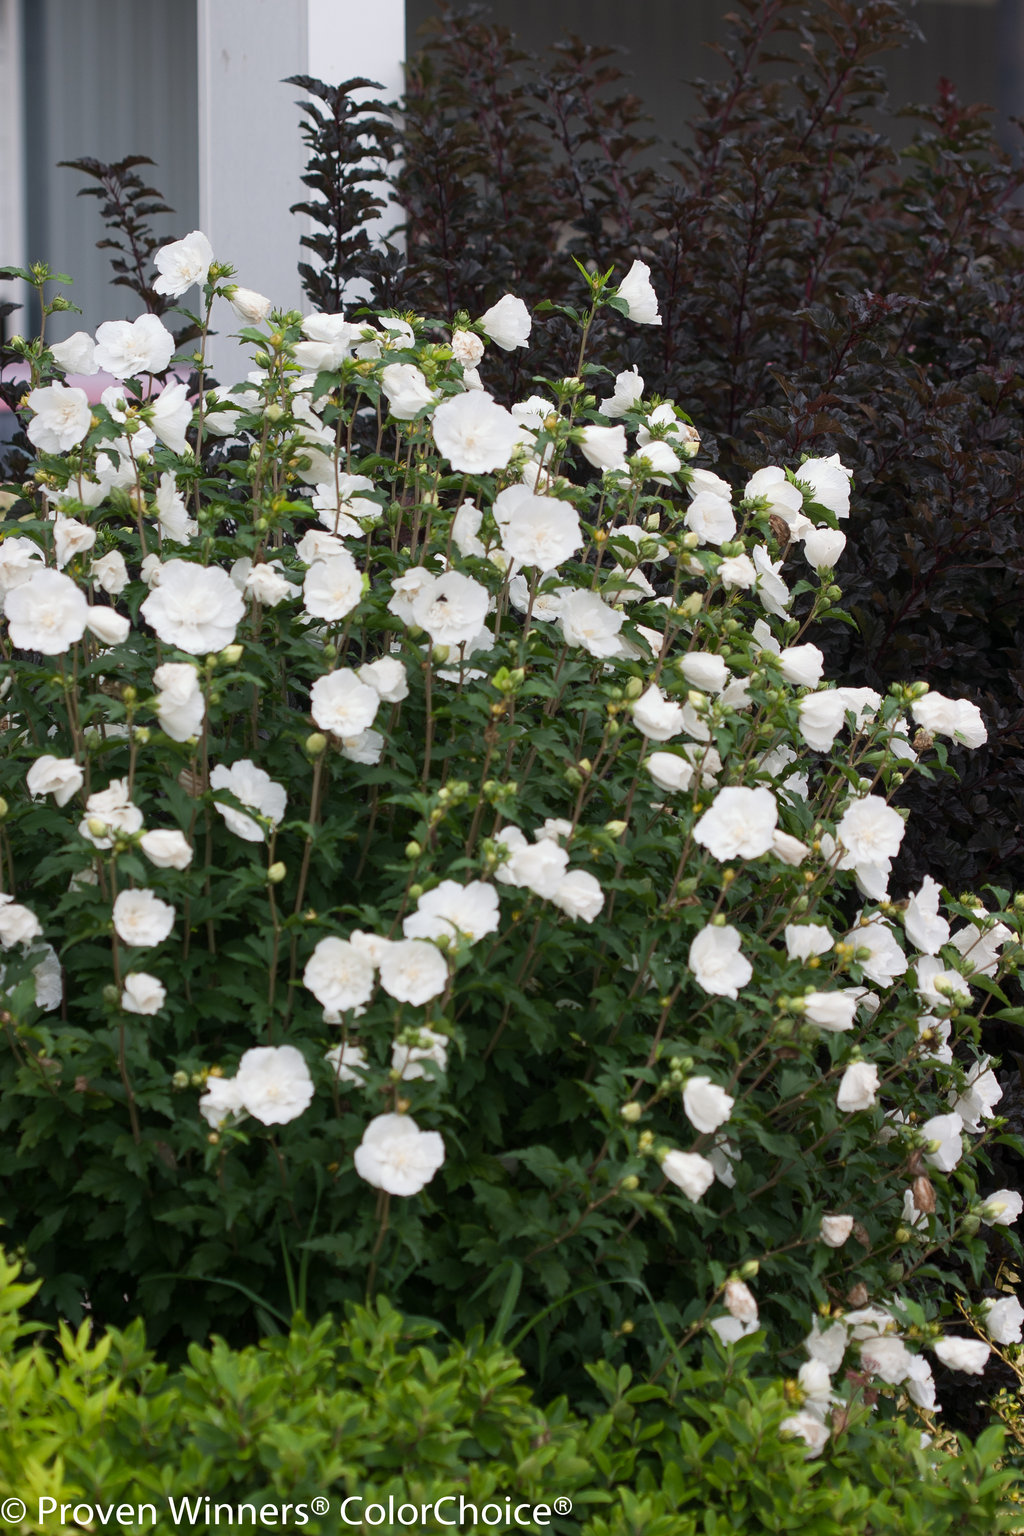 White Chiffon® - Rose of Sharon - Hibiscus syriacus | Proven Winners